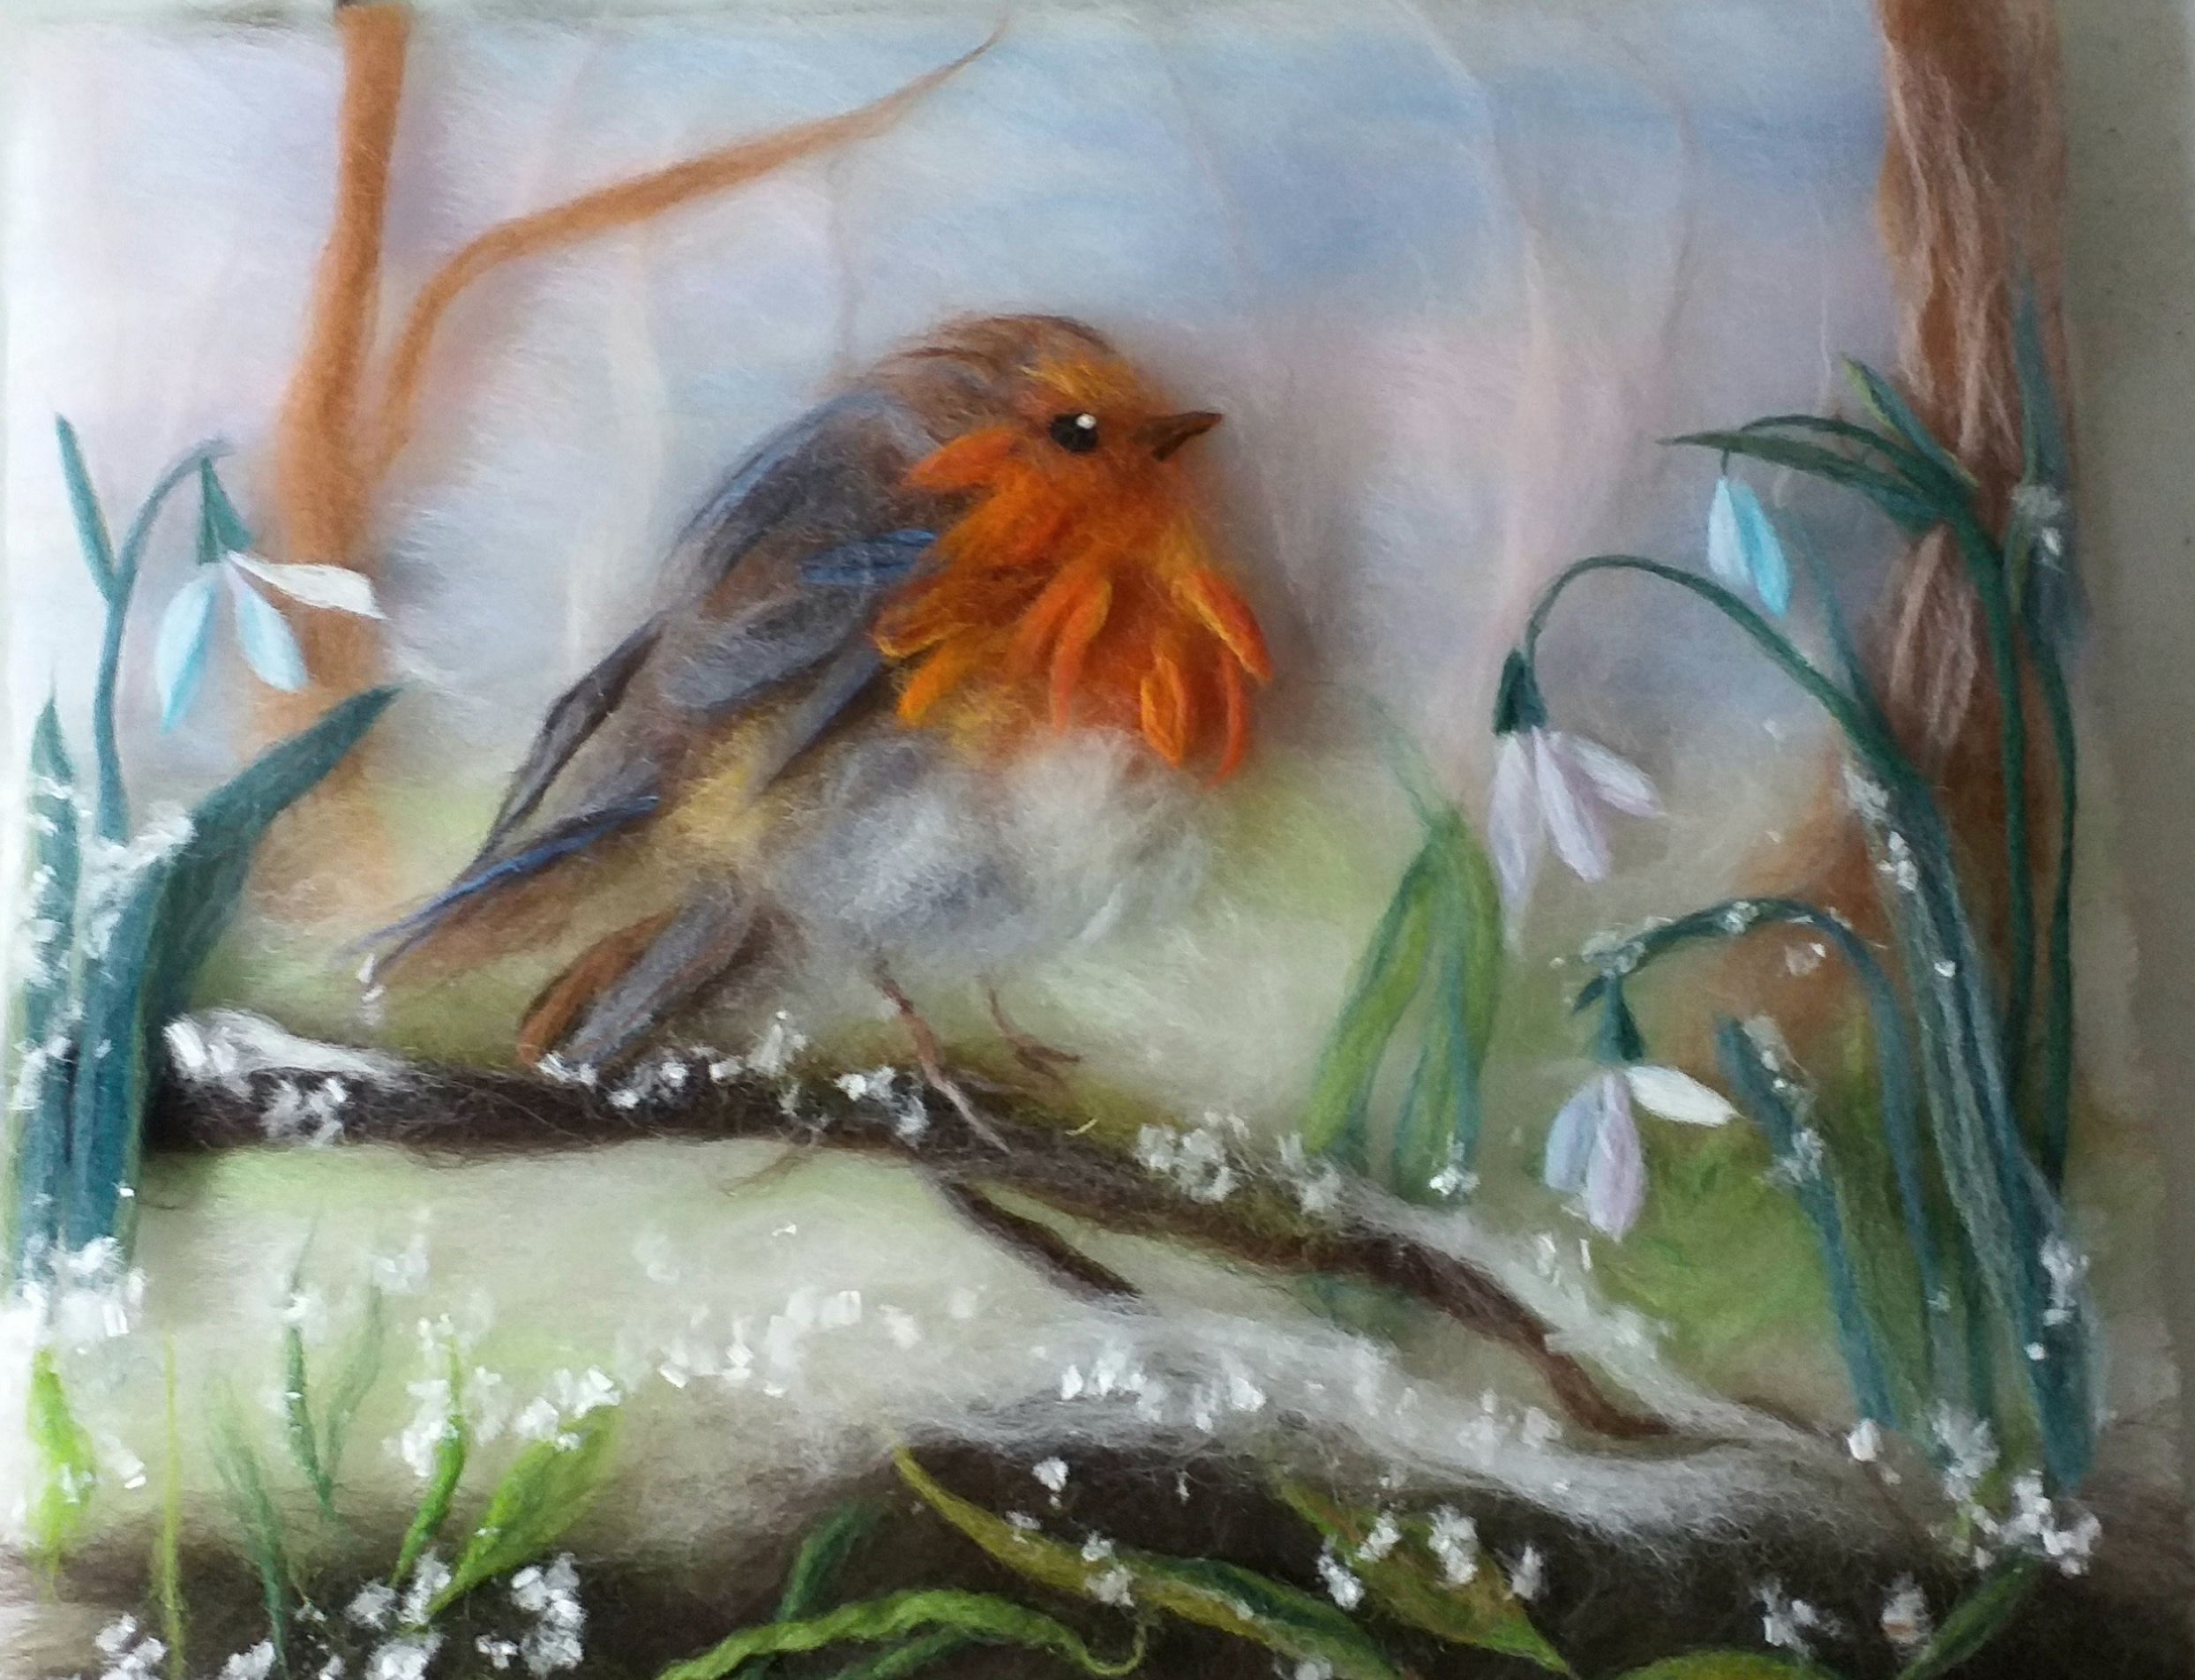 'Red robin with snowdrops' wool painting course in Kidderminster Worcestershire